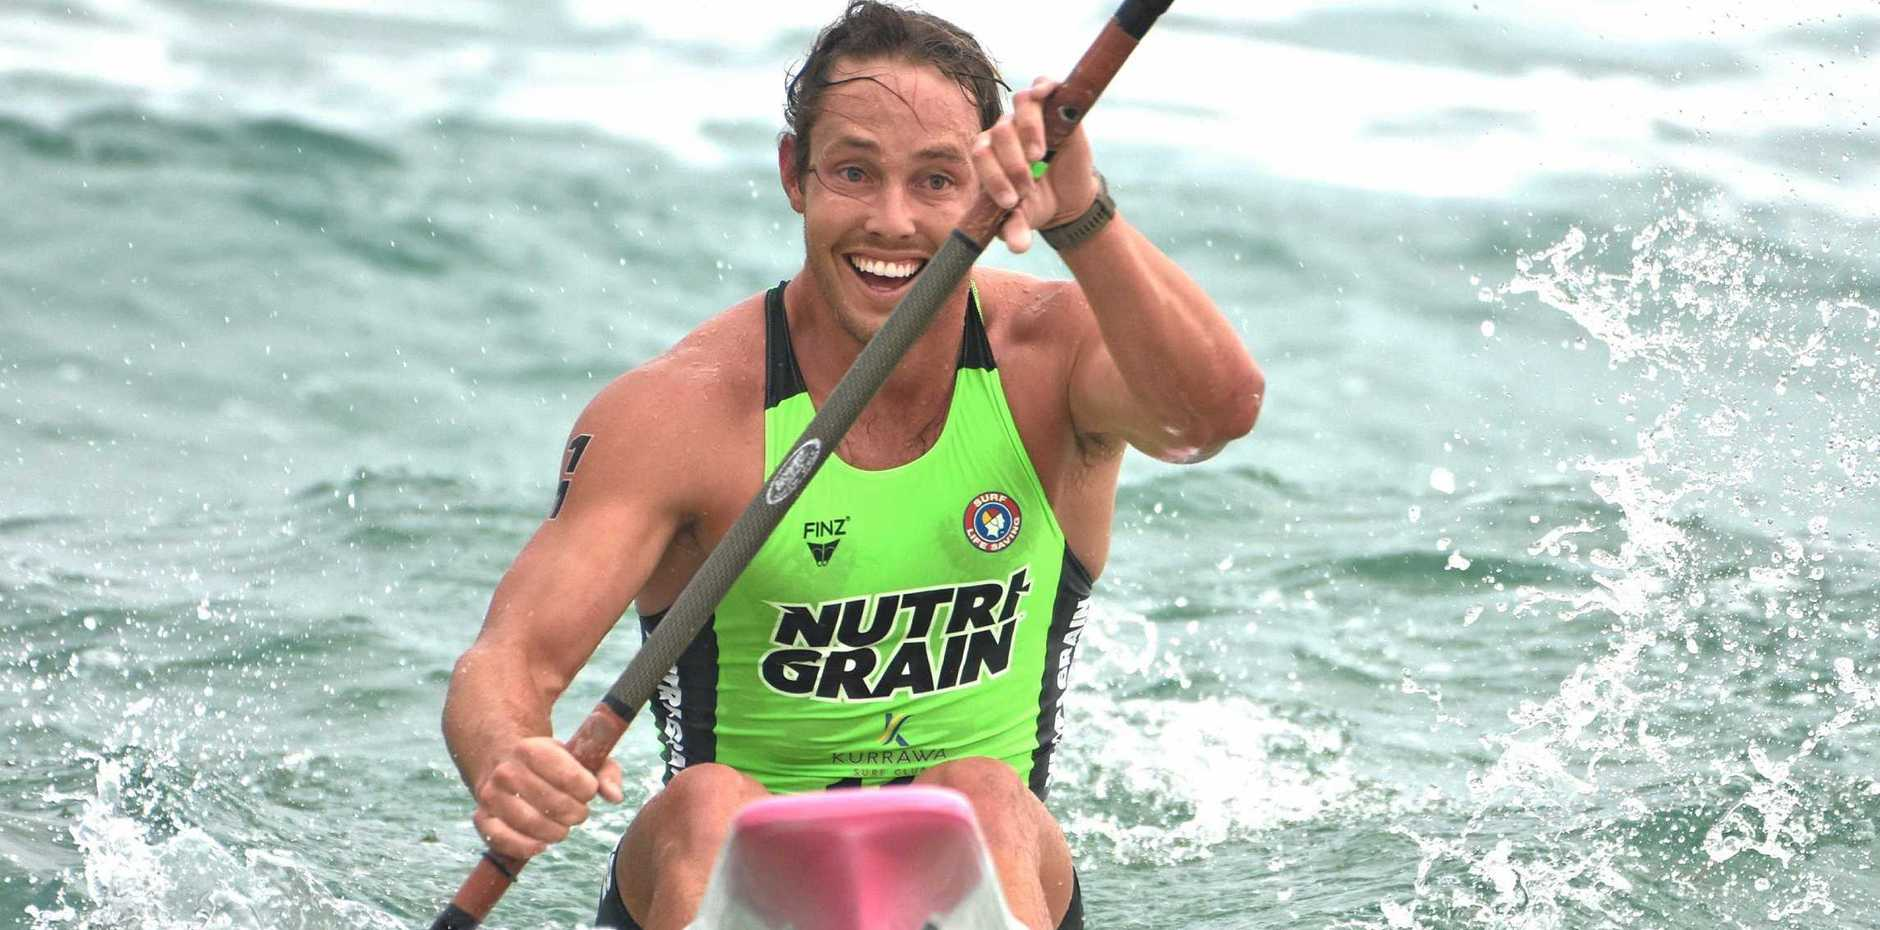 ALL SMILES: Tanyn Lyndon on his way to finishing second in the Nutri-Grain IronMan Series event at Burleigh Heads on Sunday.